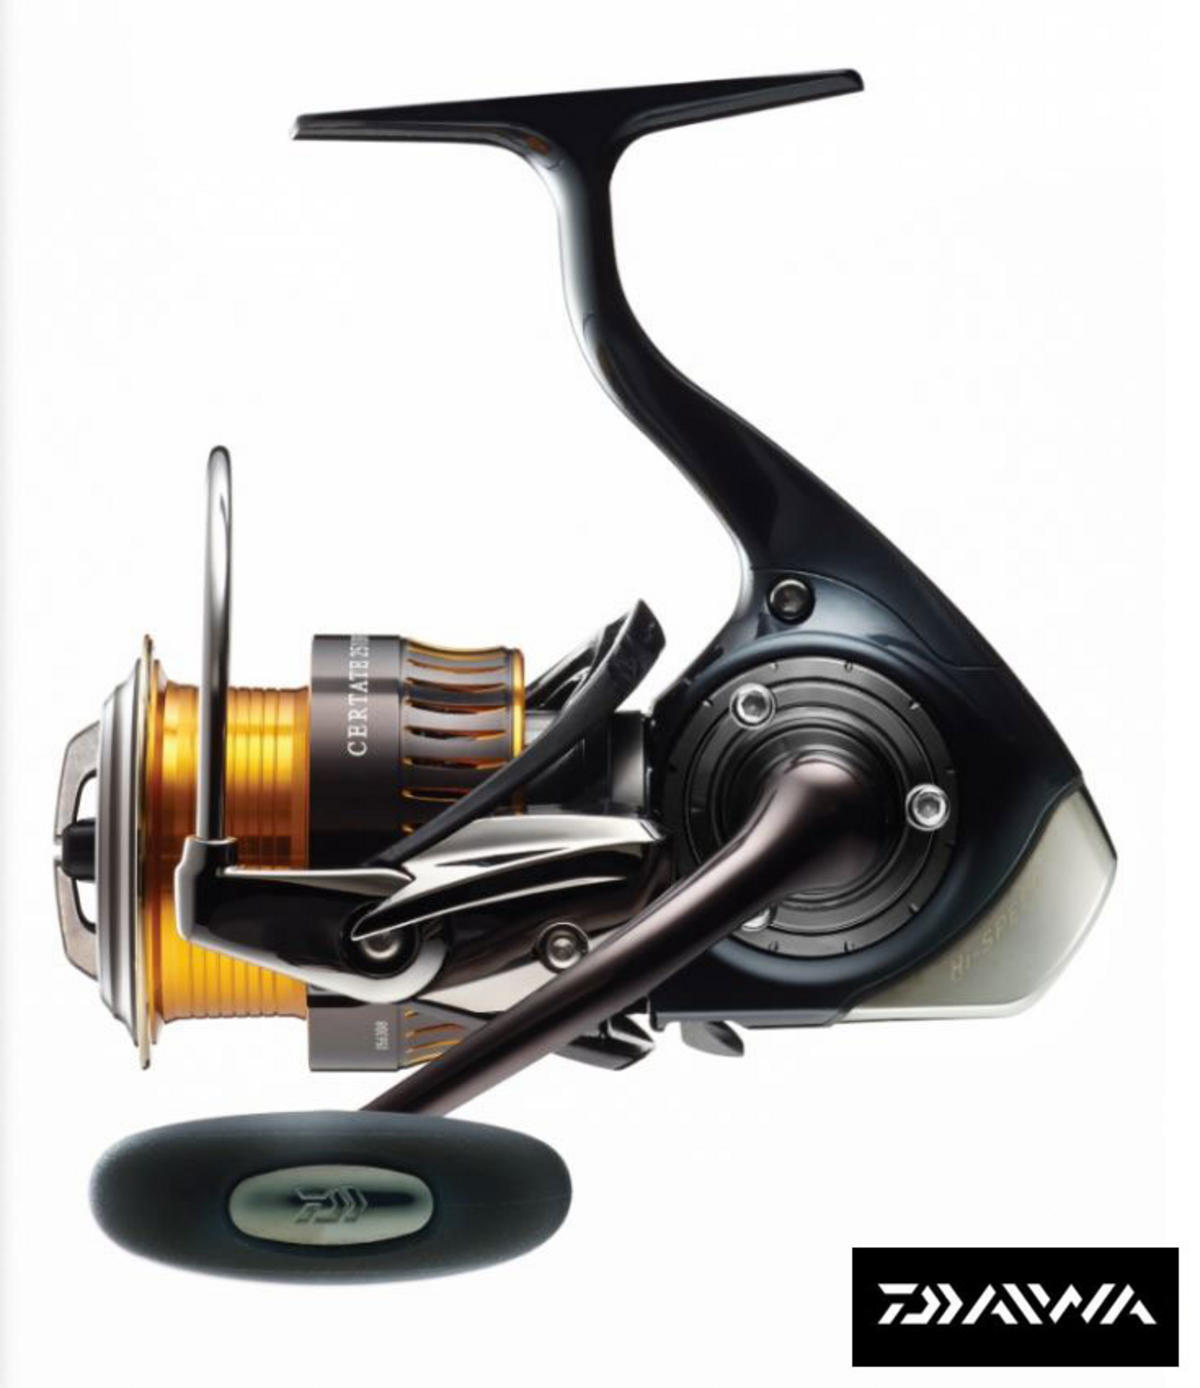 New daiwa 16 certate 3000 spinning reel model no for Daiwa fishing reels